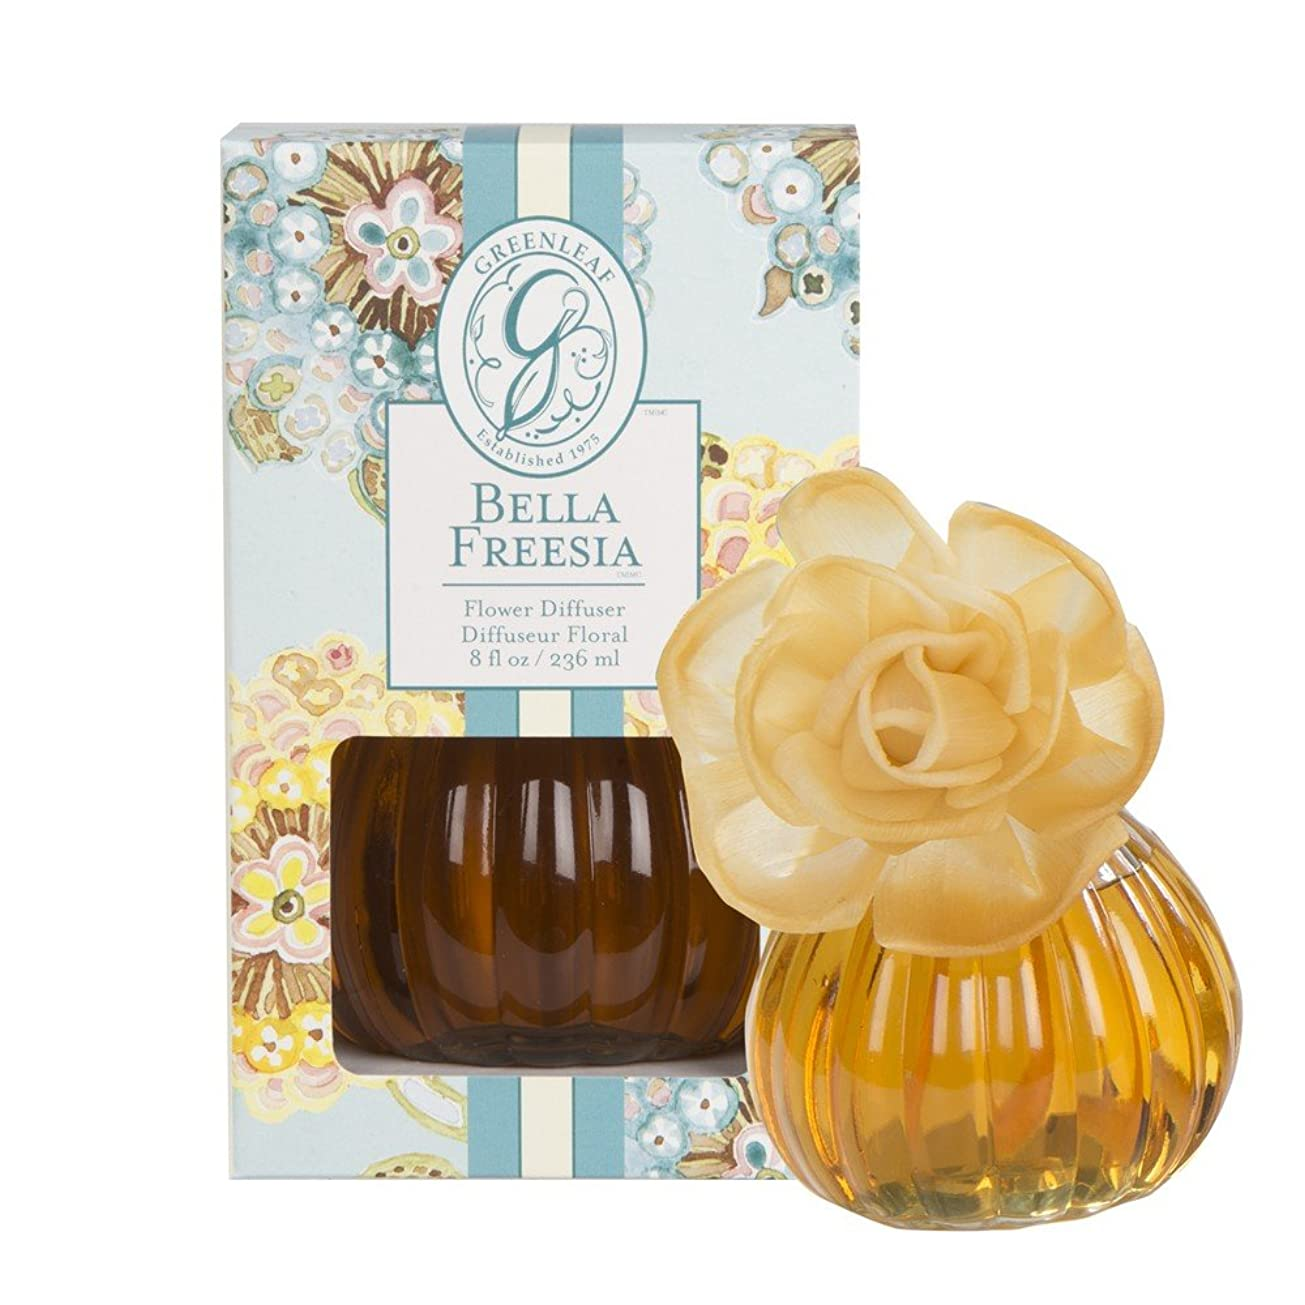 ピンチ耳場合GREENLEAF FLOWER DIFFUSER BELLA FREESIA